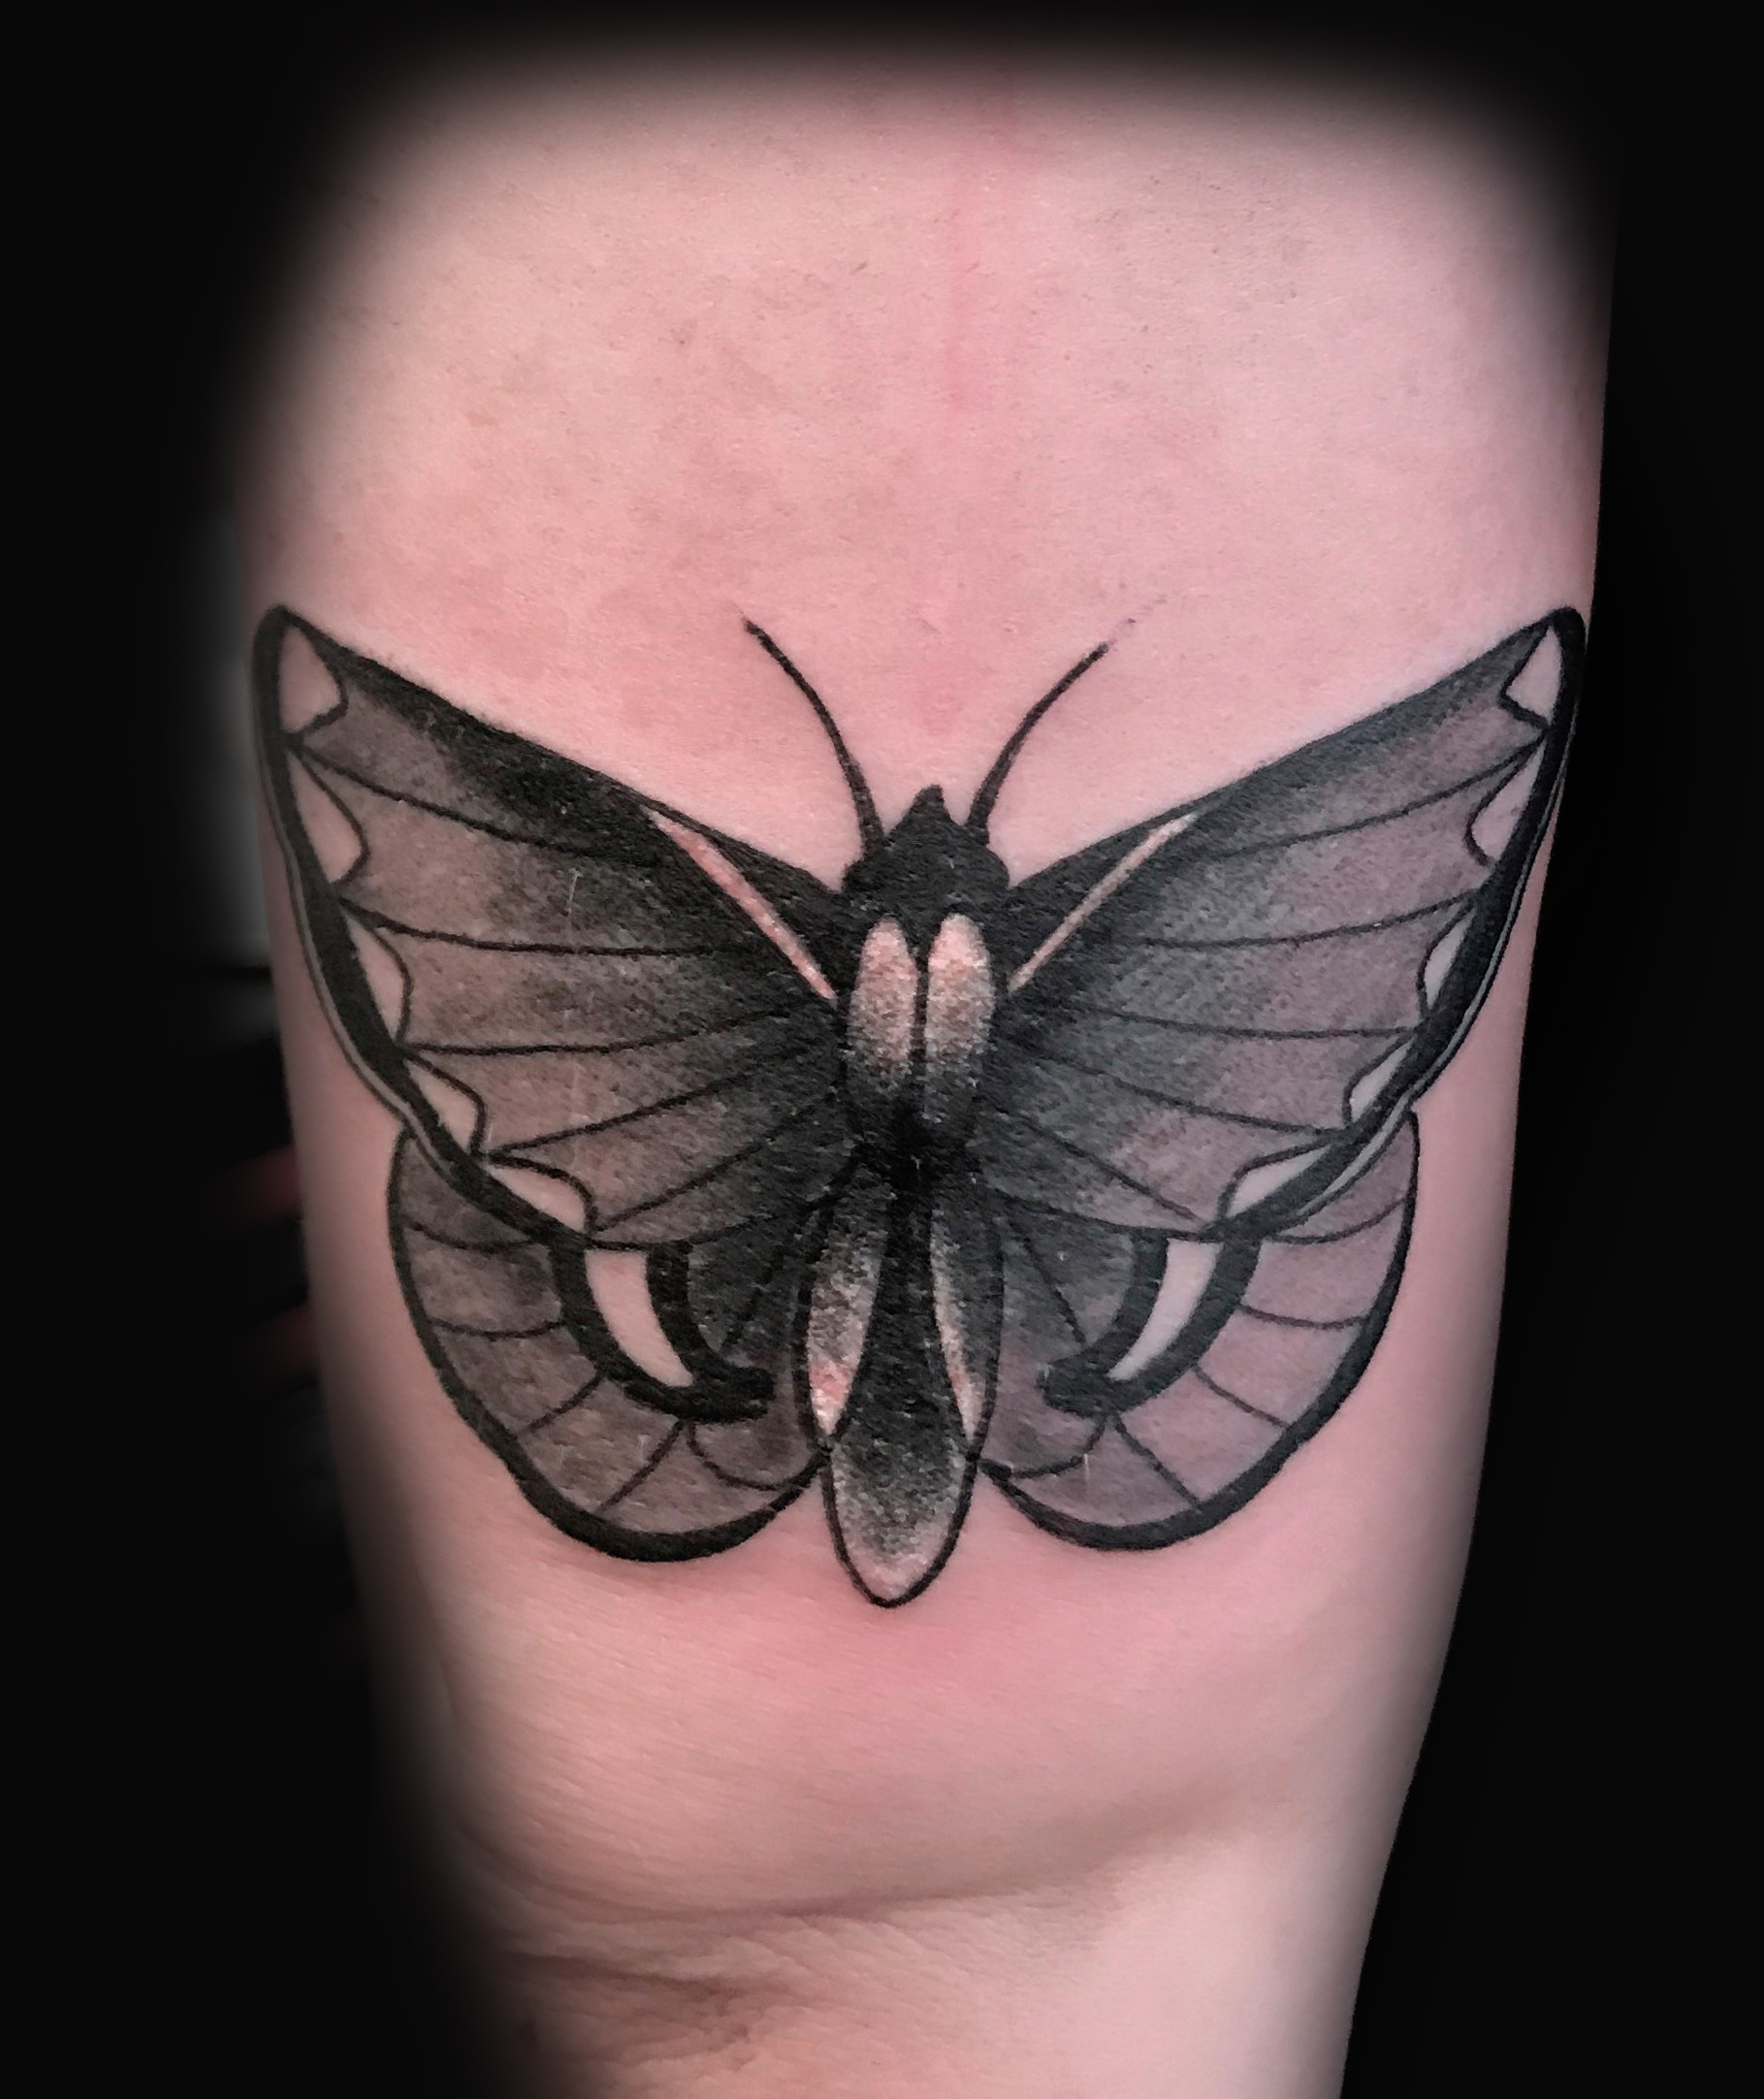 Ivan-Herrera-Tattoo-Berlin-Blackwork-Motte